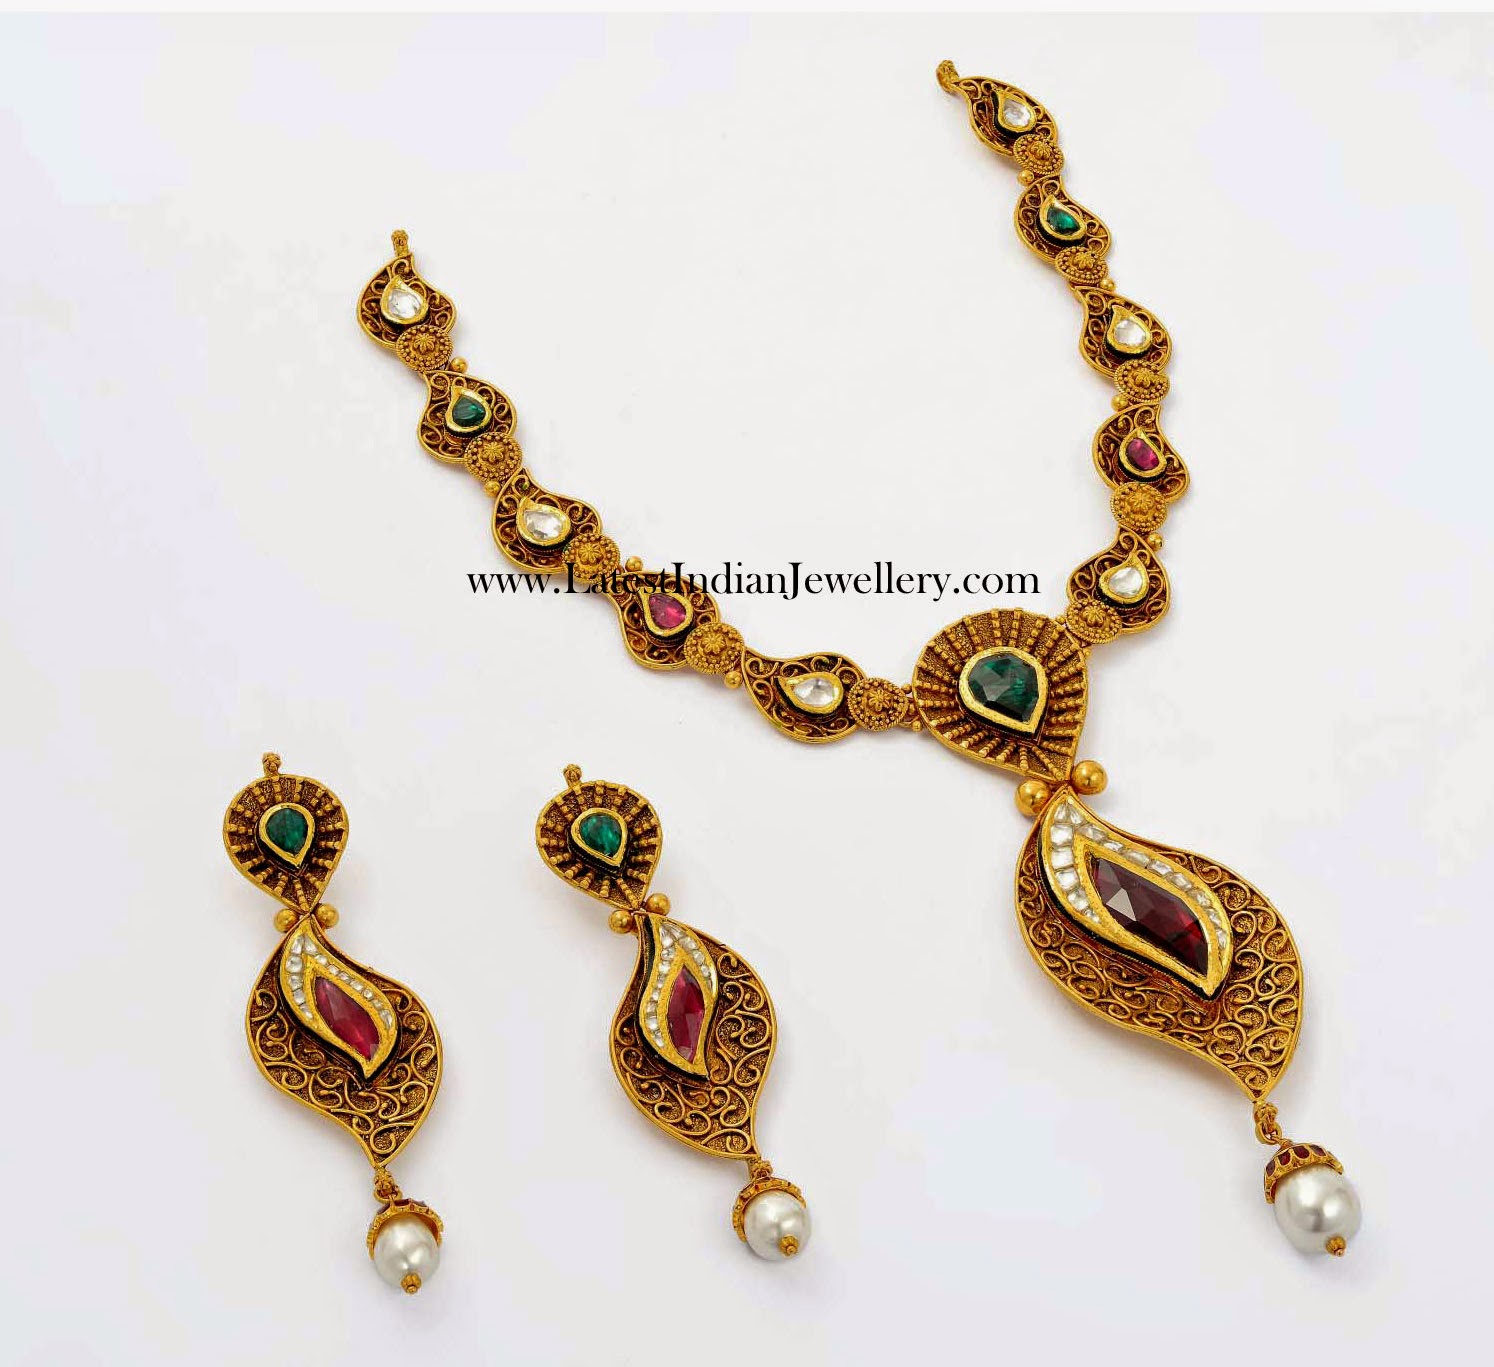 Two Tone Antique Kundan Necklace